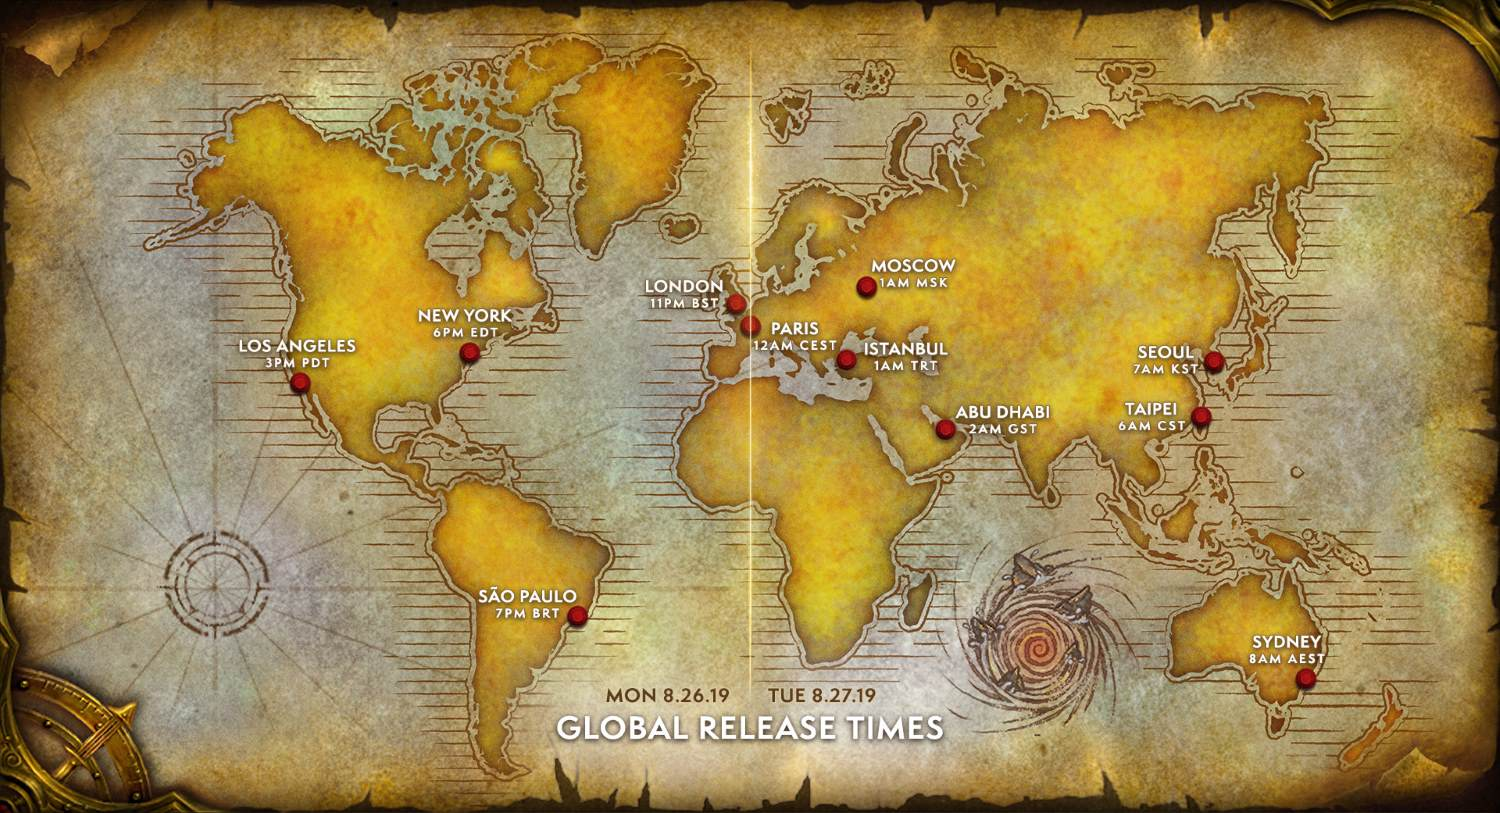 WoW Classic Global Release Map